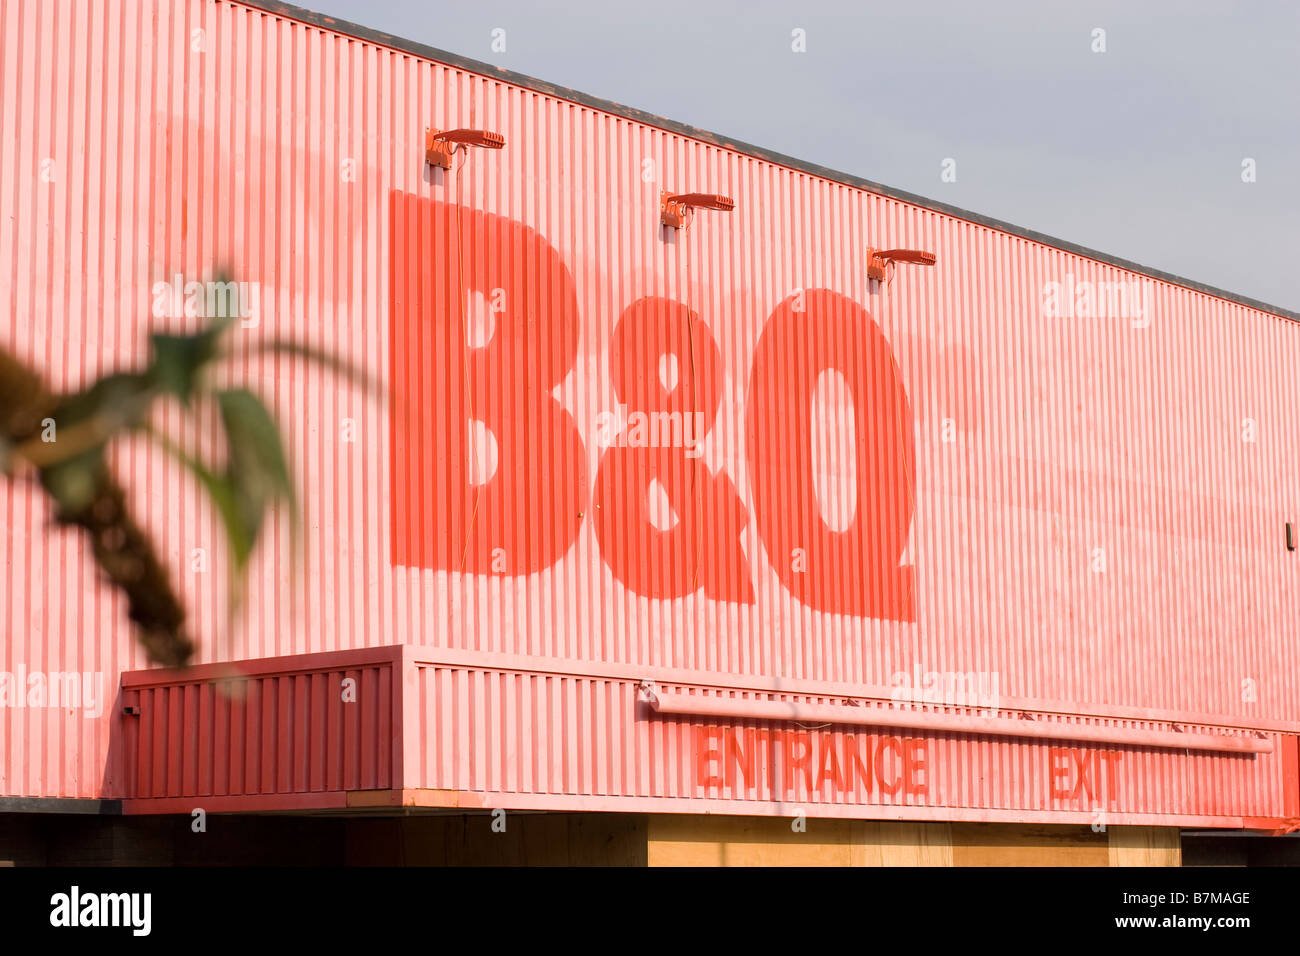 B Q run down disused diy superstore b and q b&q owned by kingfisher group bandq b and q, empty store shop - Stock Image